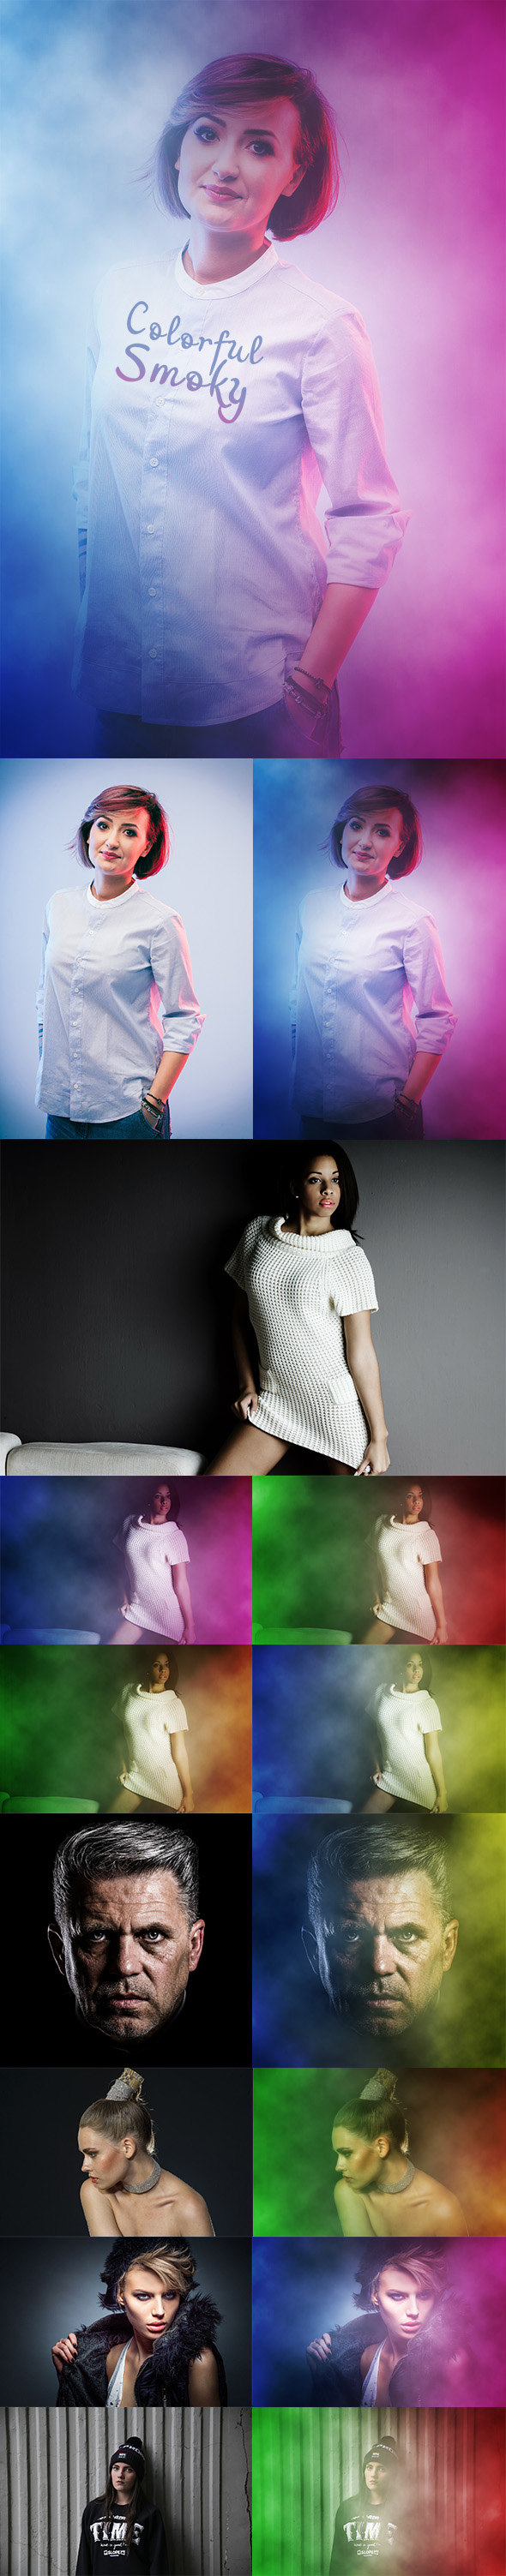 Colorful Smoky Action - Photo Effects Actions